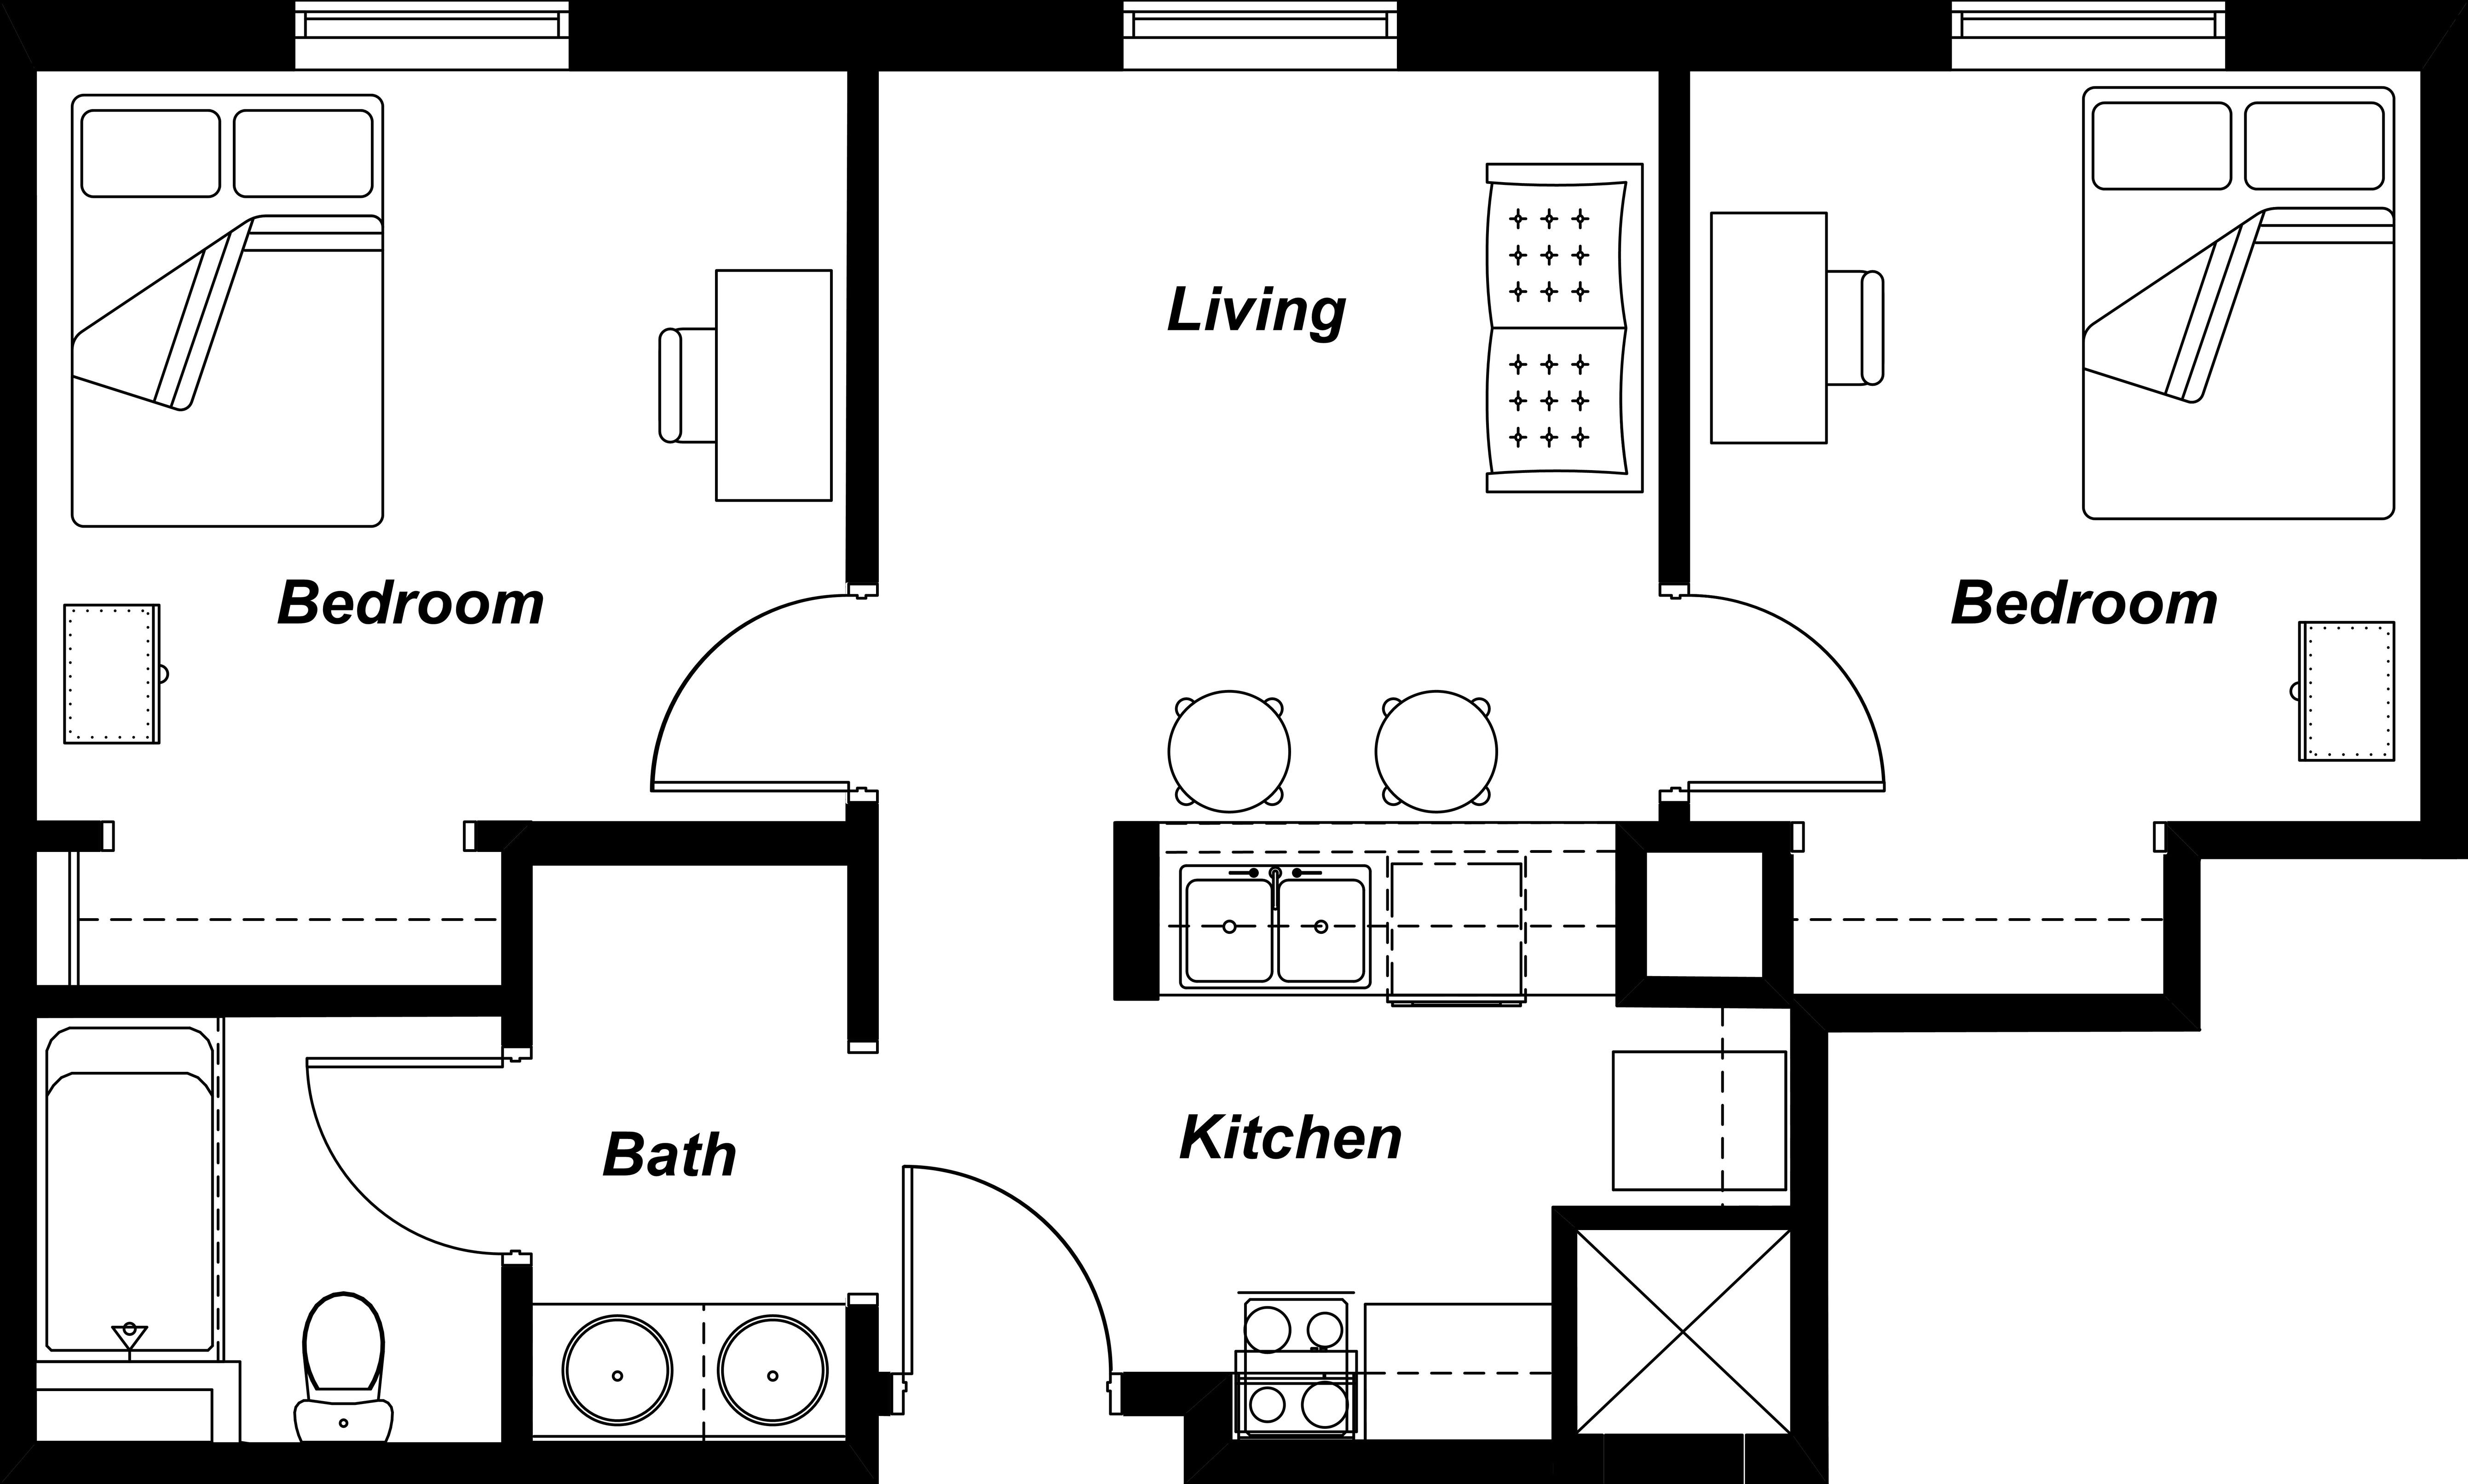 residential floor plans perfect home design ideas with ...